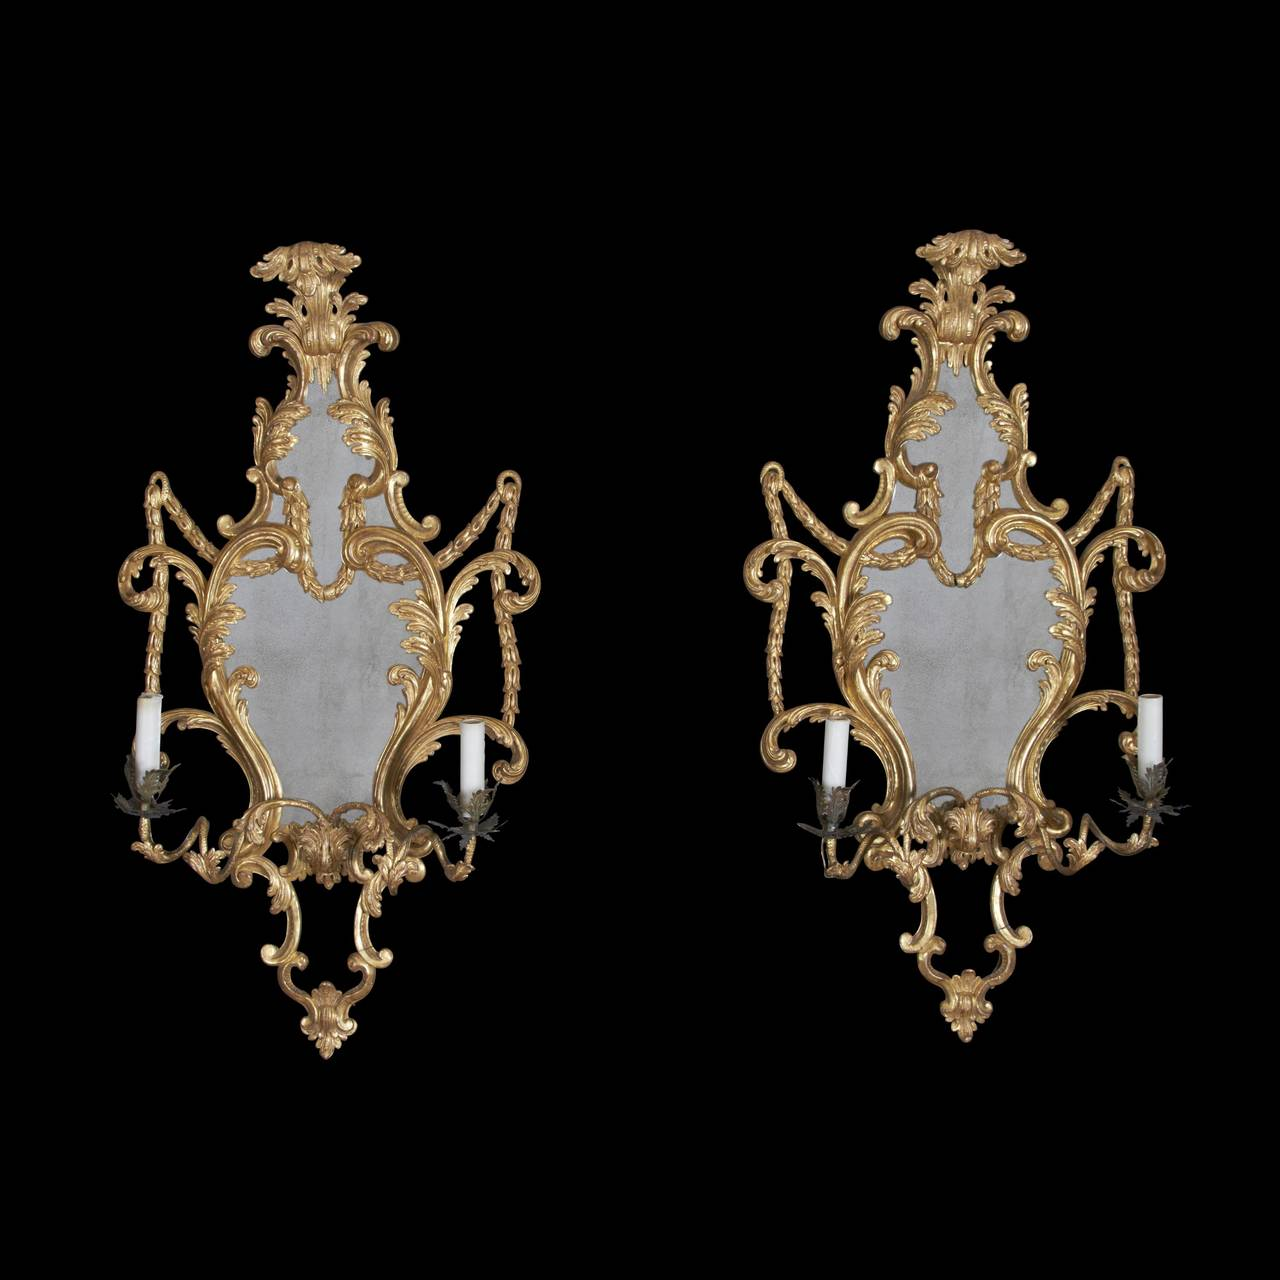 Fine Pair of George III Giltwood Two-Light Sconces, 18th Century For Sale 5